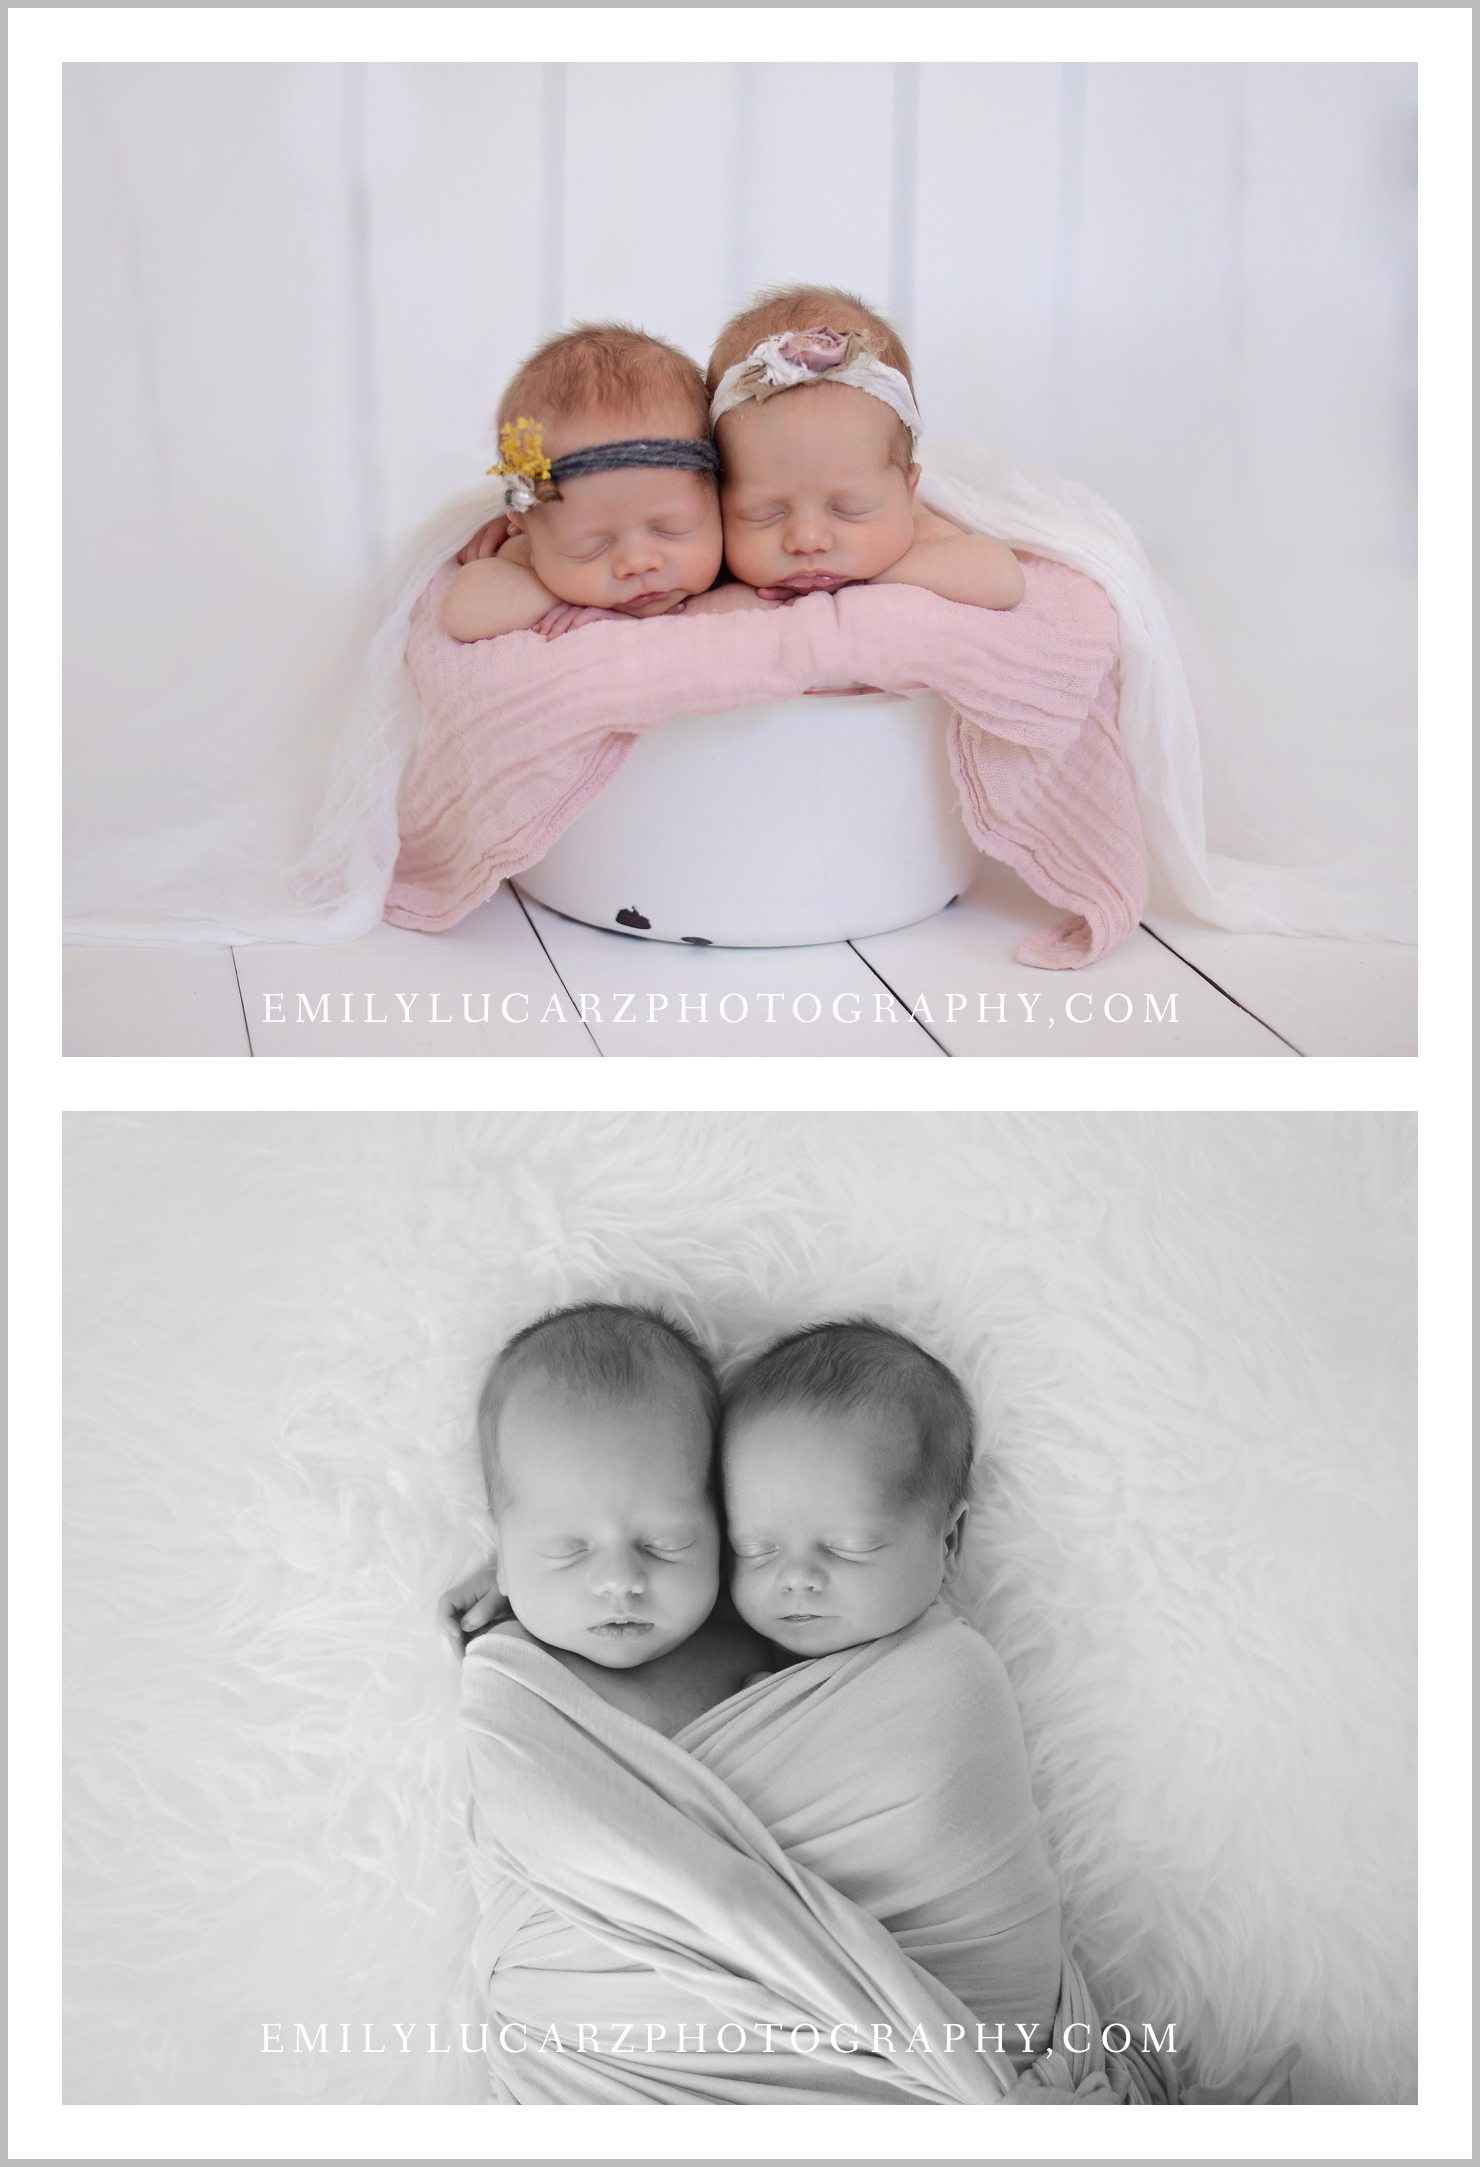 St. Louis newborn twin photography